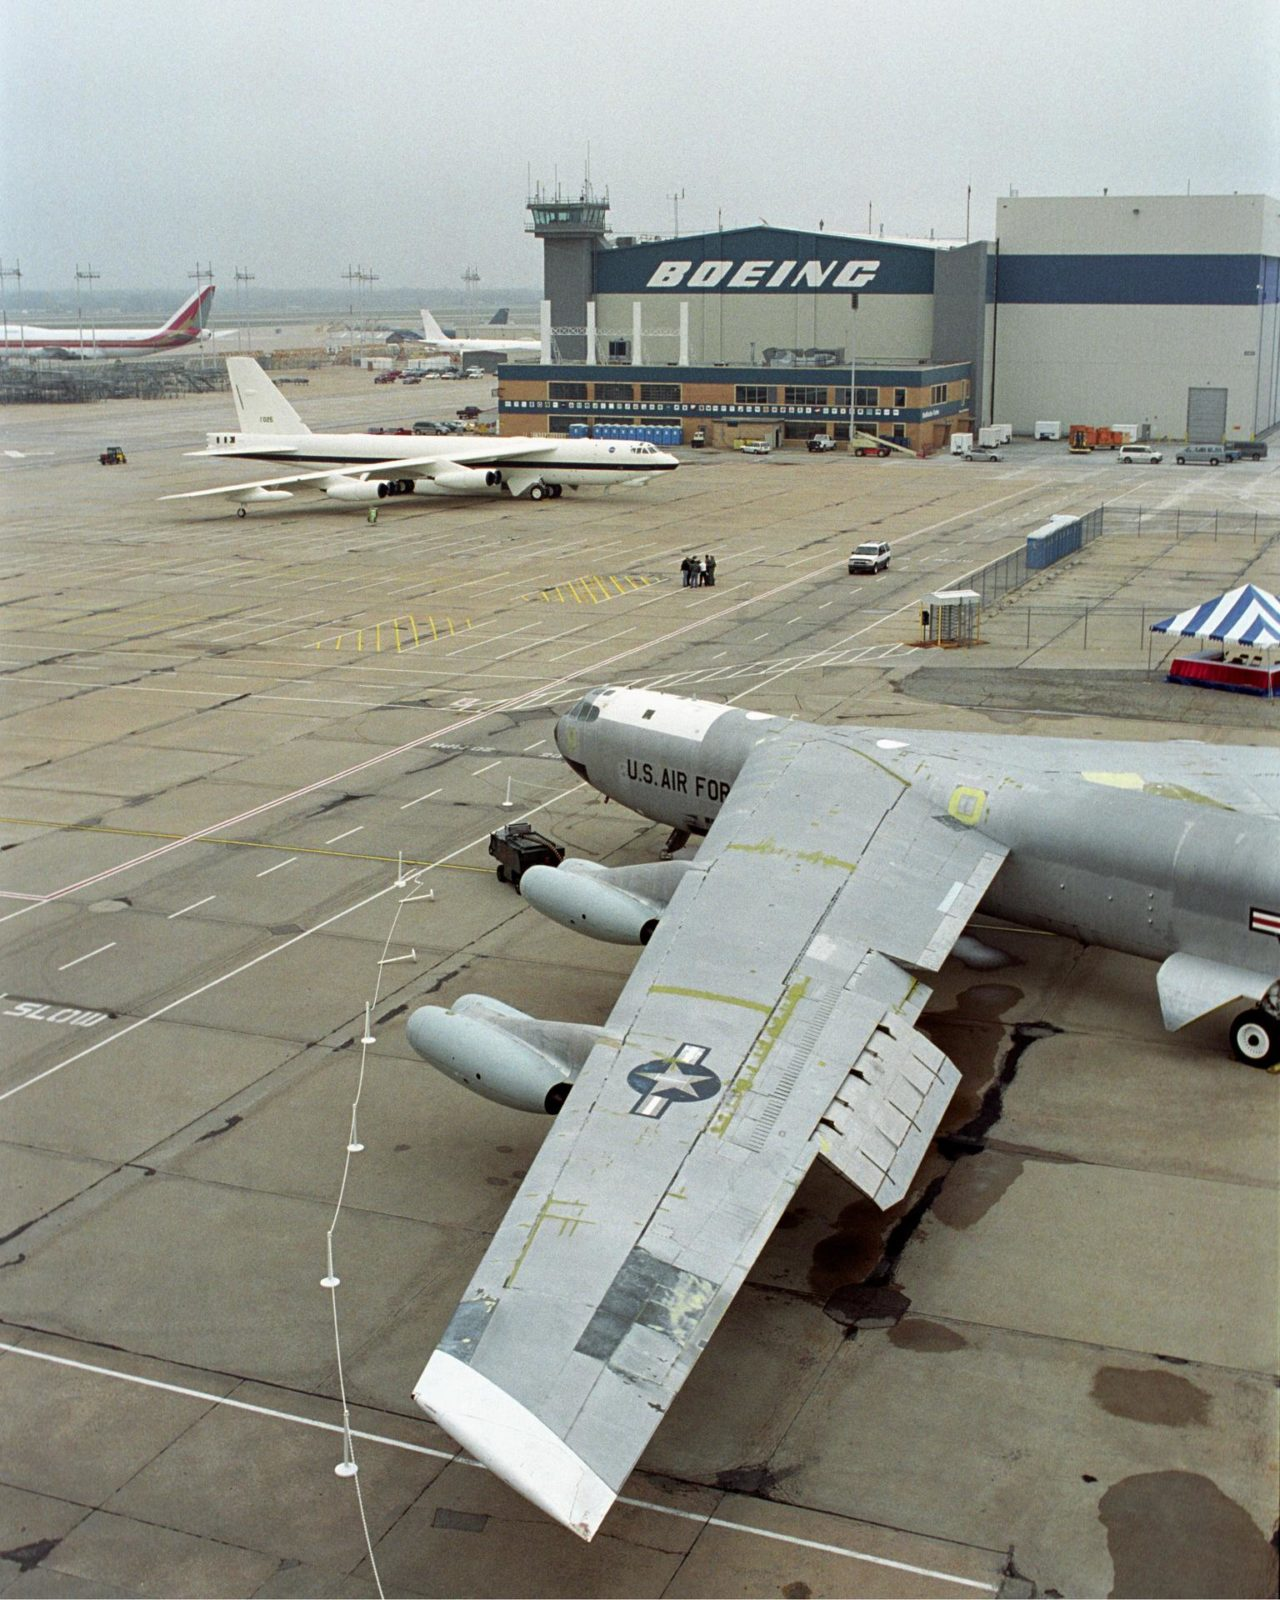 NASA's veteran silver B-52B, foreground, joined the new B-52H in NASA markings for a ceremony in Wichita, Kansas, April 12, 2002, marking the 50th anniversary of the B-52 aircraft EC02-0080-38